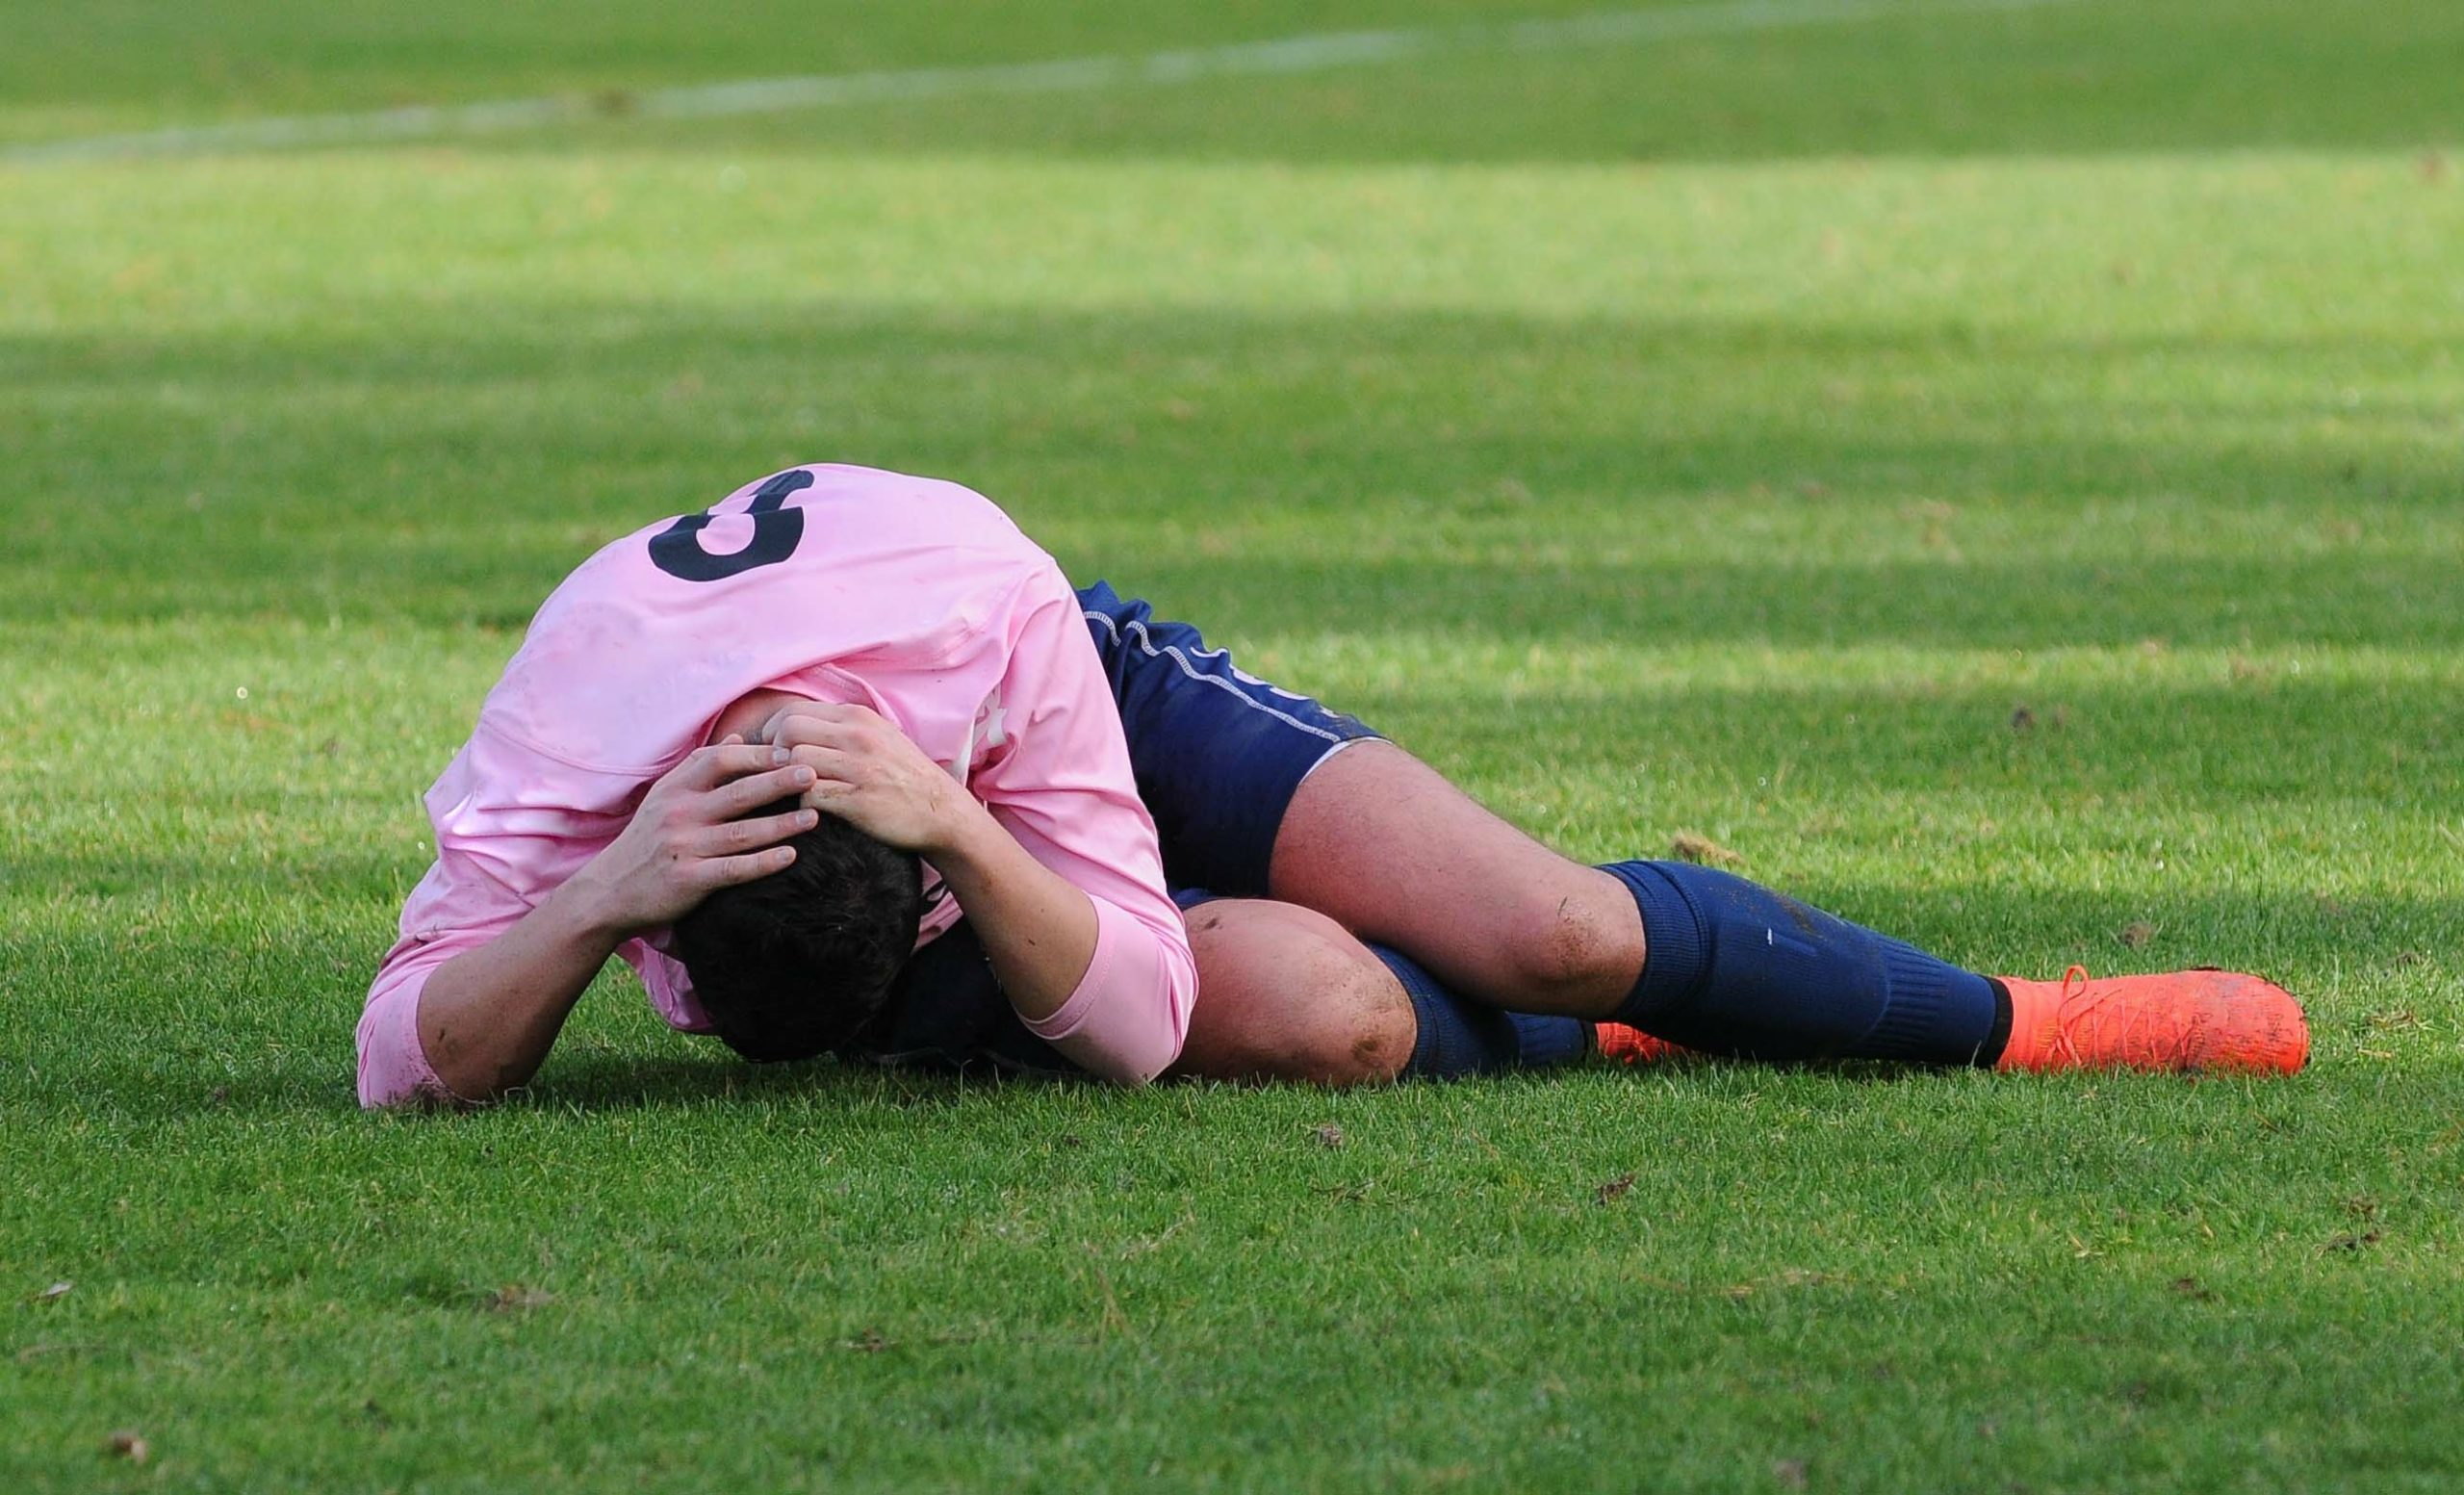 Can neck-specific exercises help reduce the risk of head and neck injuries in athletes?